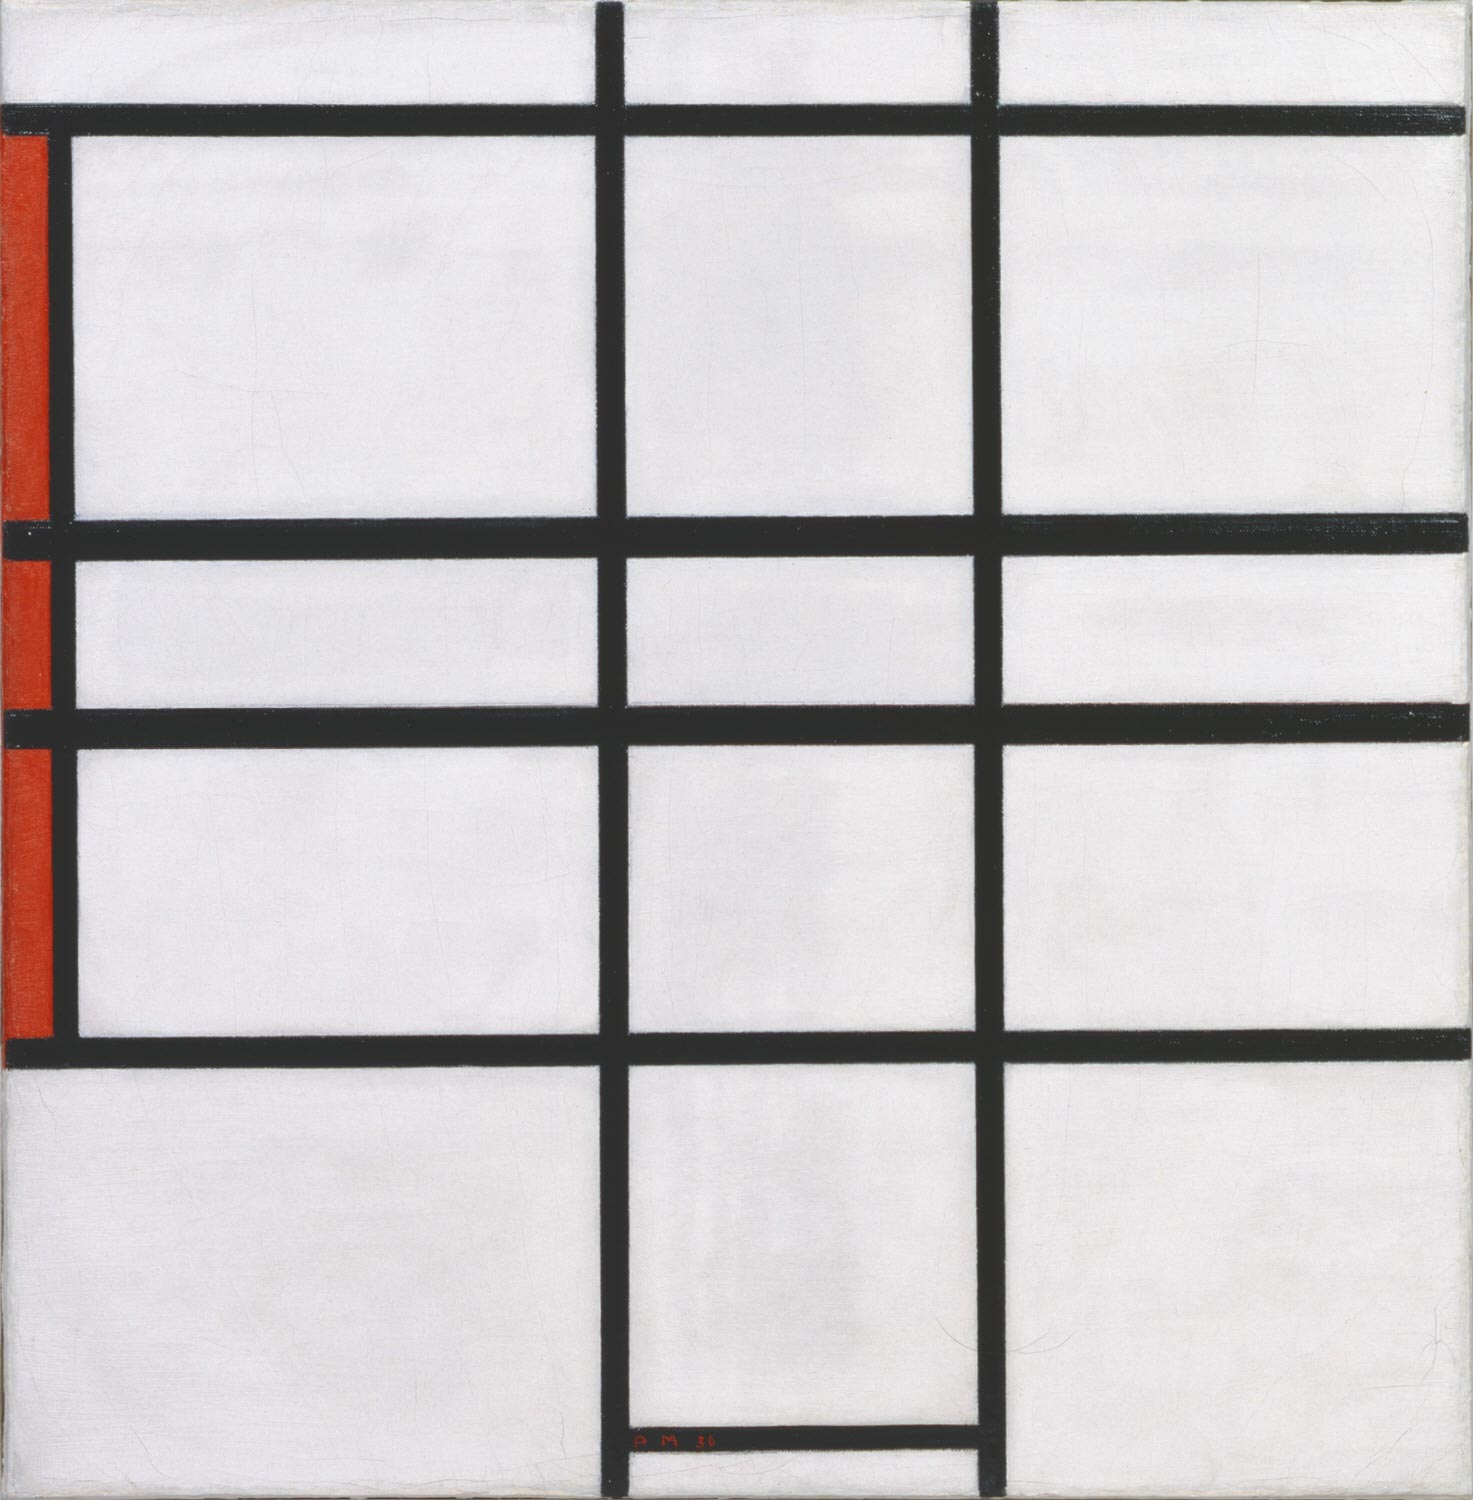 Composition with White and Red